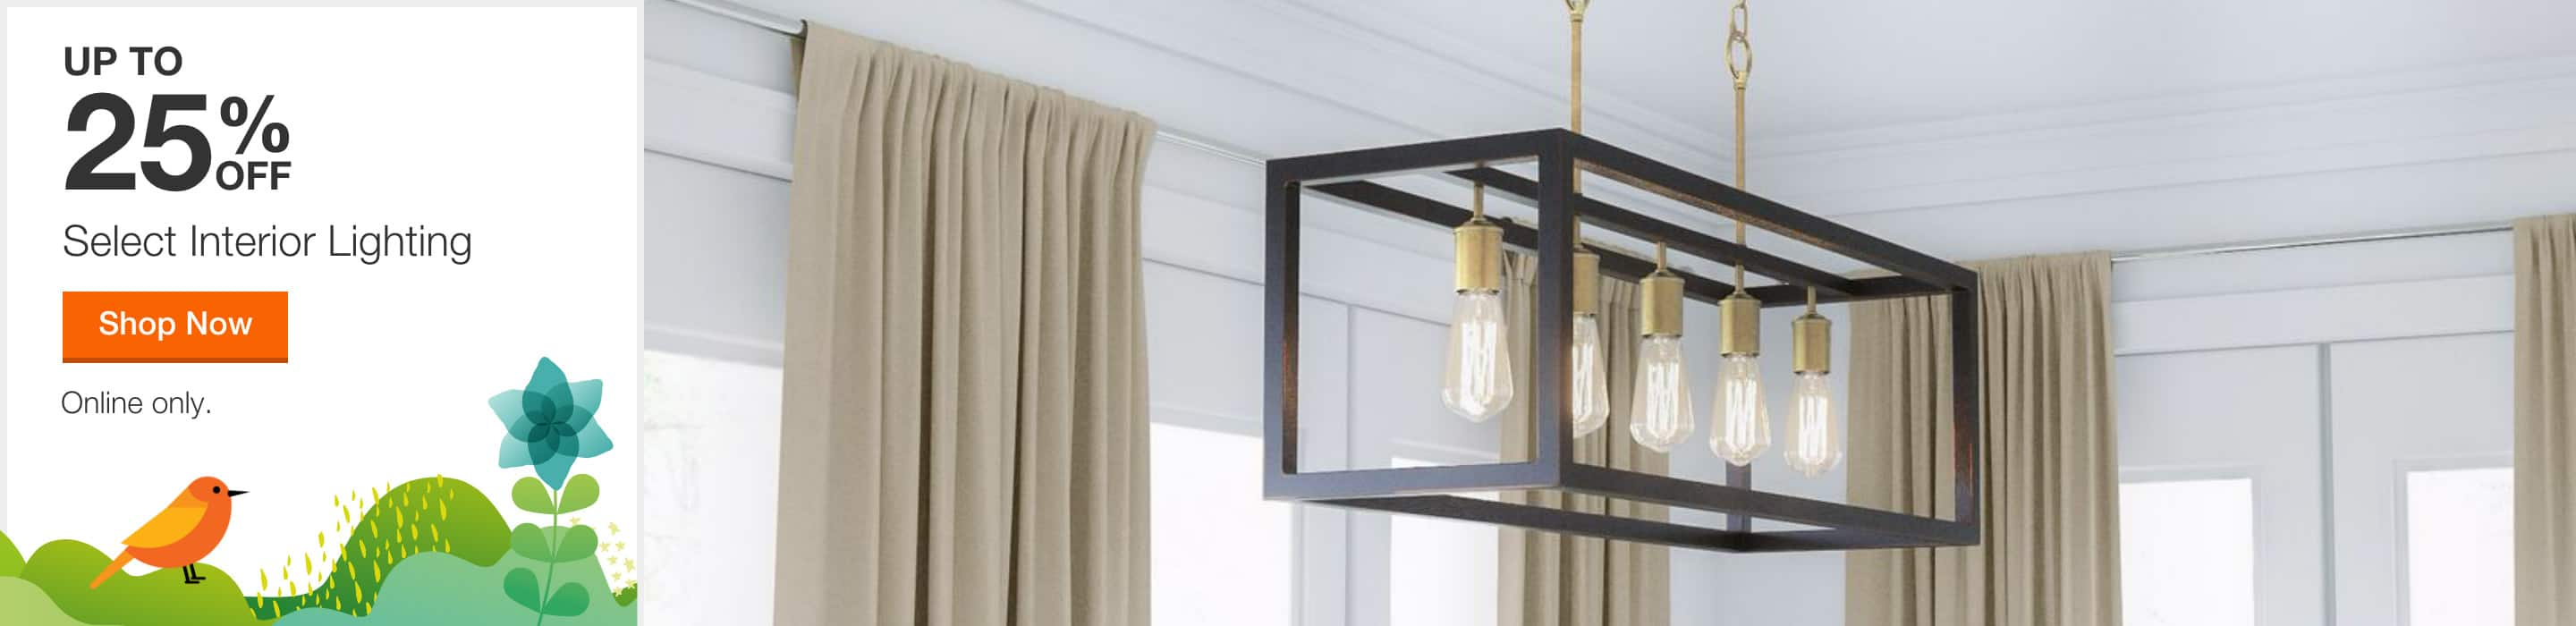 up to 25% off select interior lighting. shop now. online only.